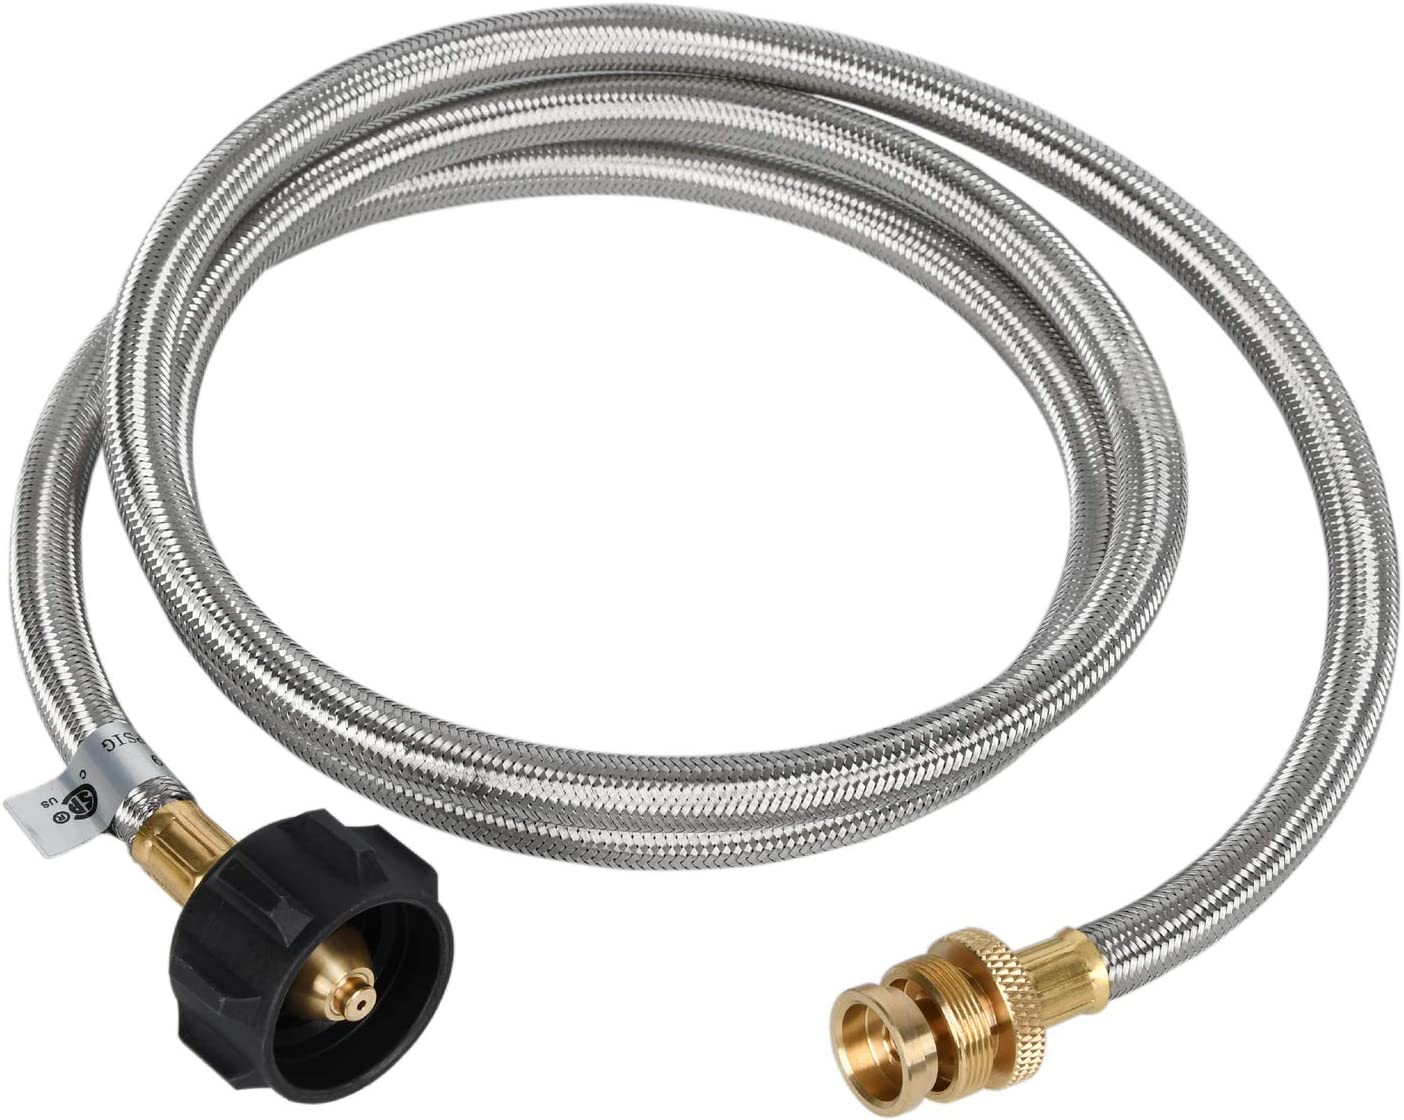 GGC 4FT Stainless Steel Braided Propane Adapter Hose 1 lb to 20 lb Converter for QCC1/Type 1 LP Tank to 1 LB Portable Grill, Camp Stove, Buddy Heater